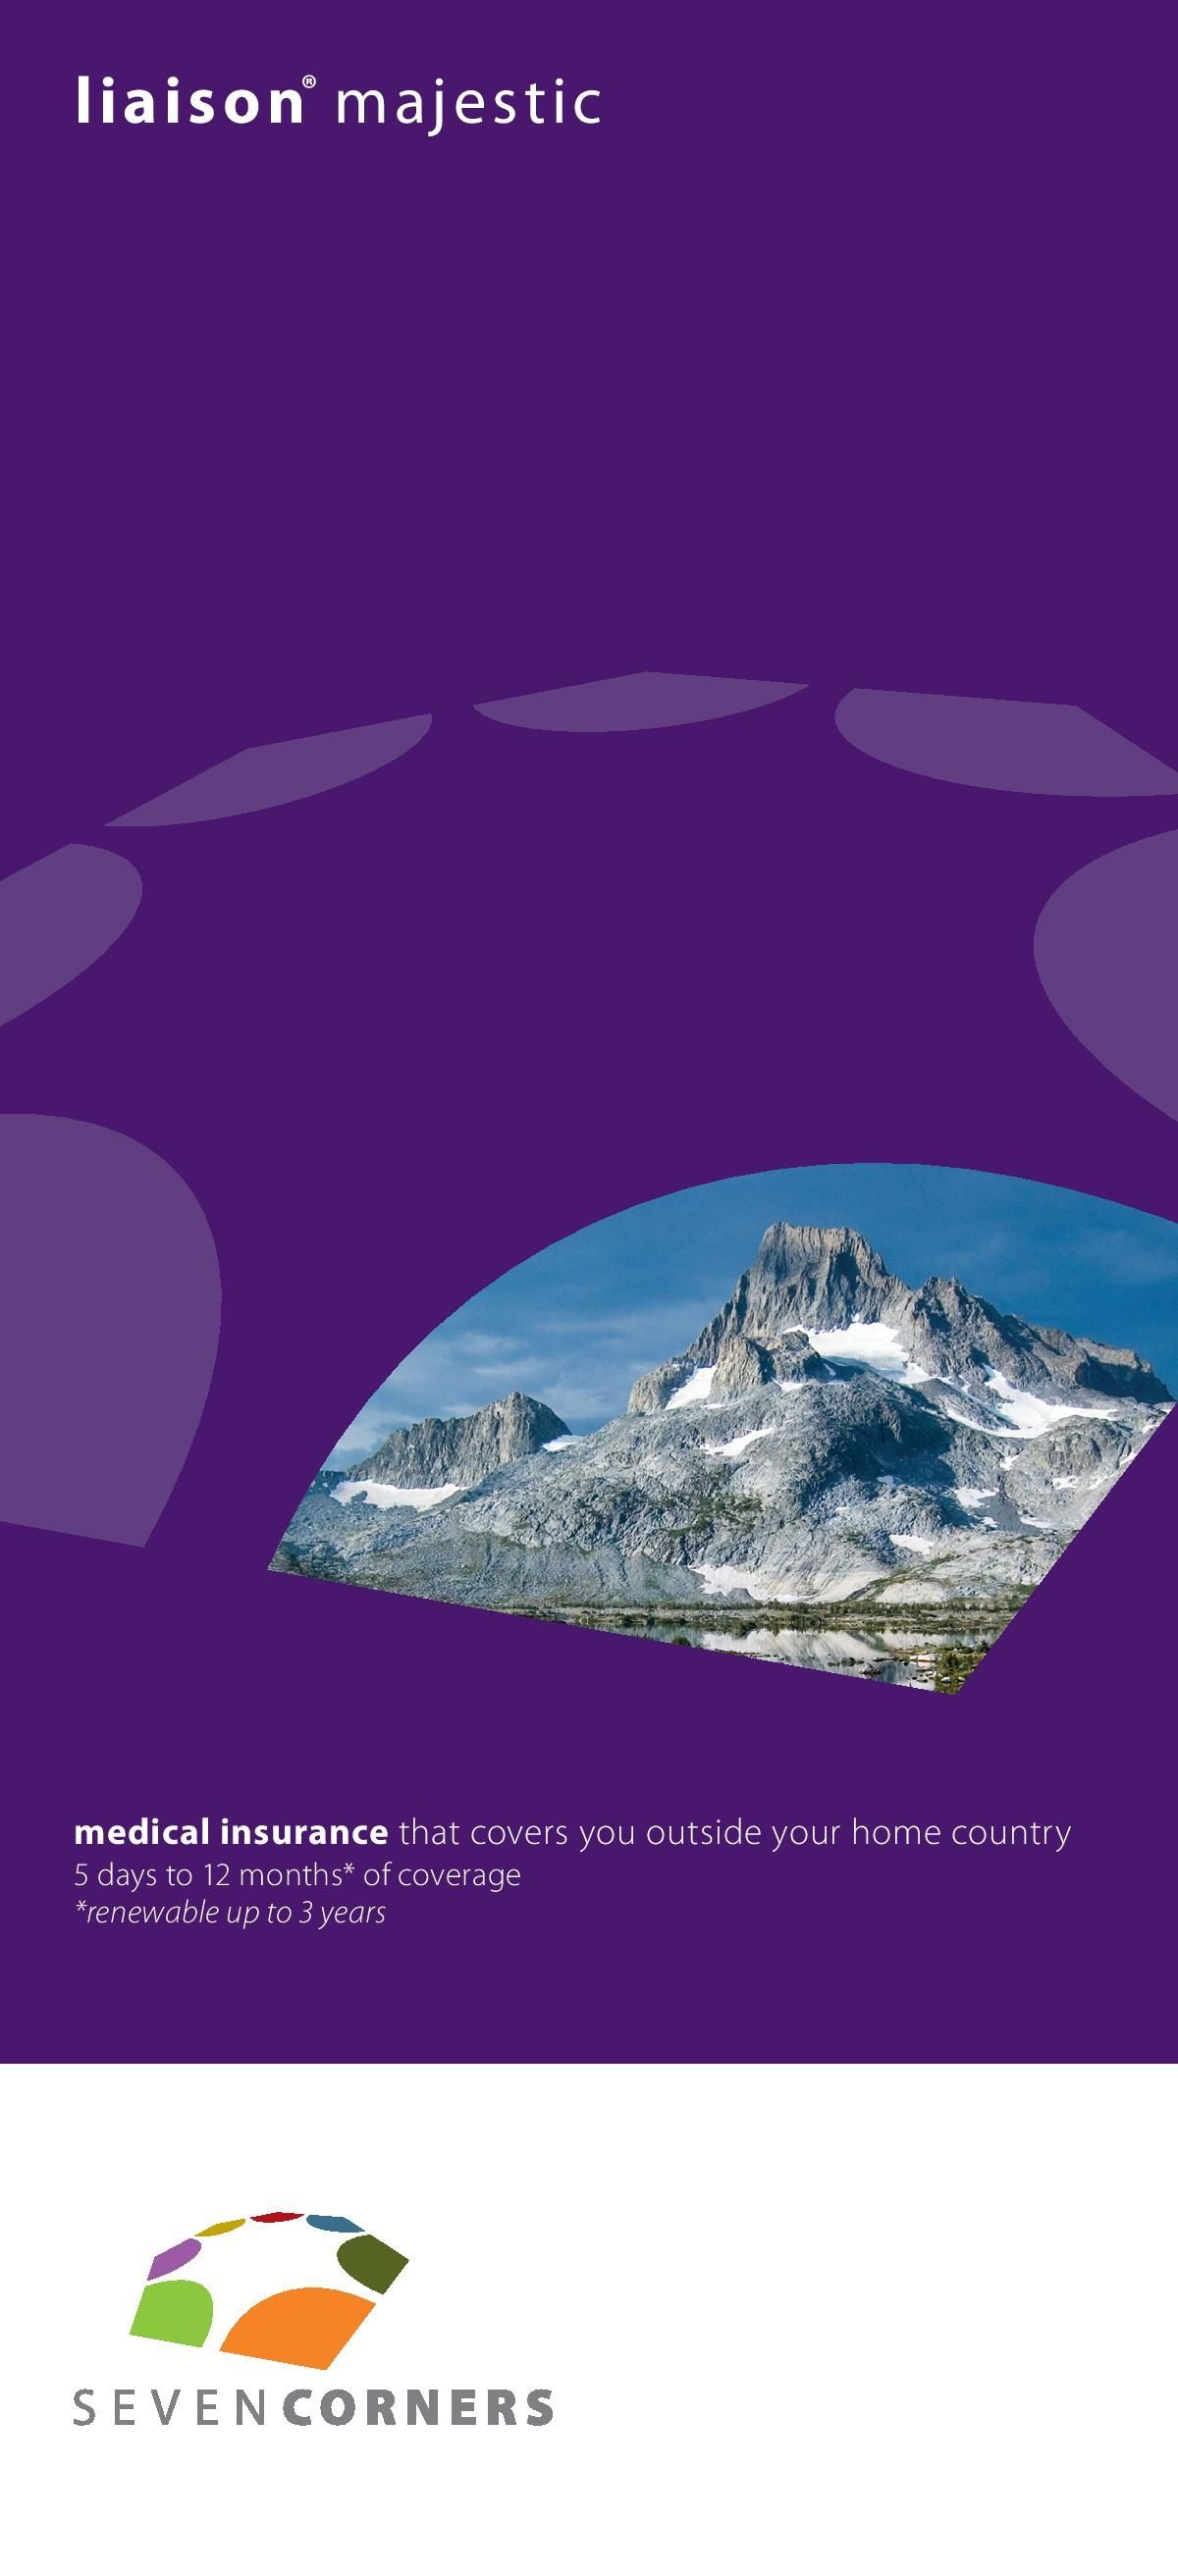 Liaison Majestic Insurance is a travel medical insurance